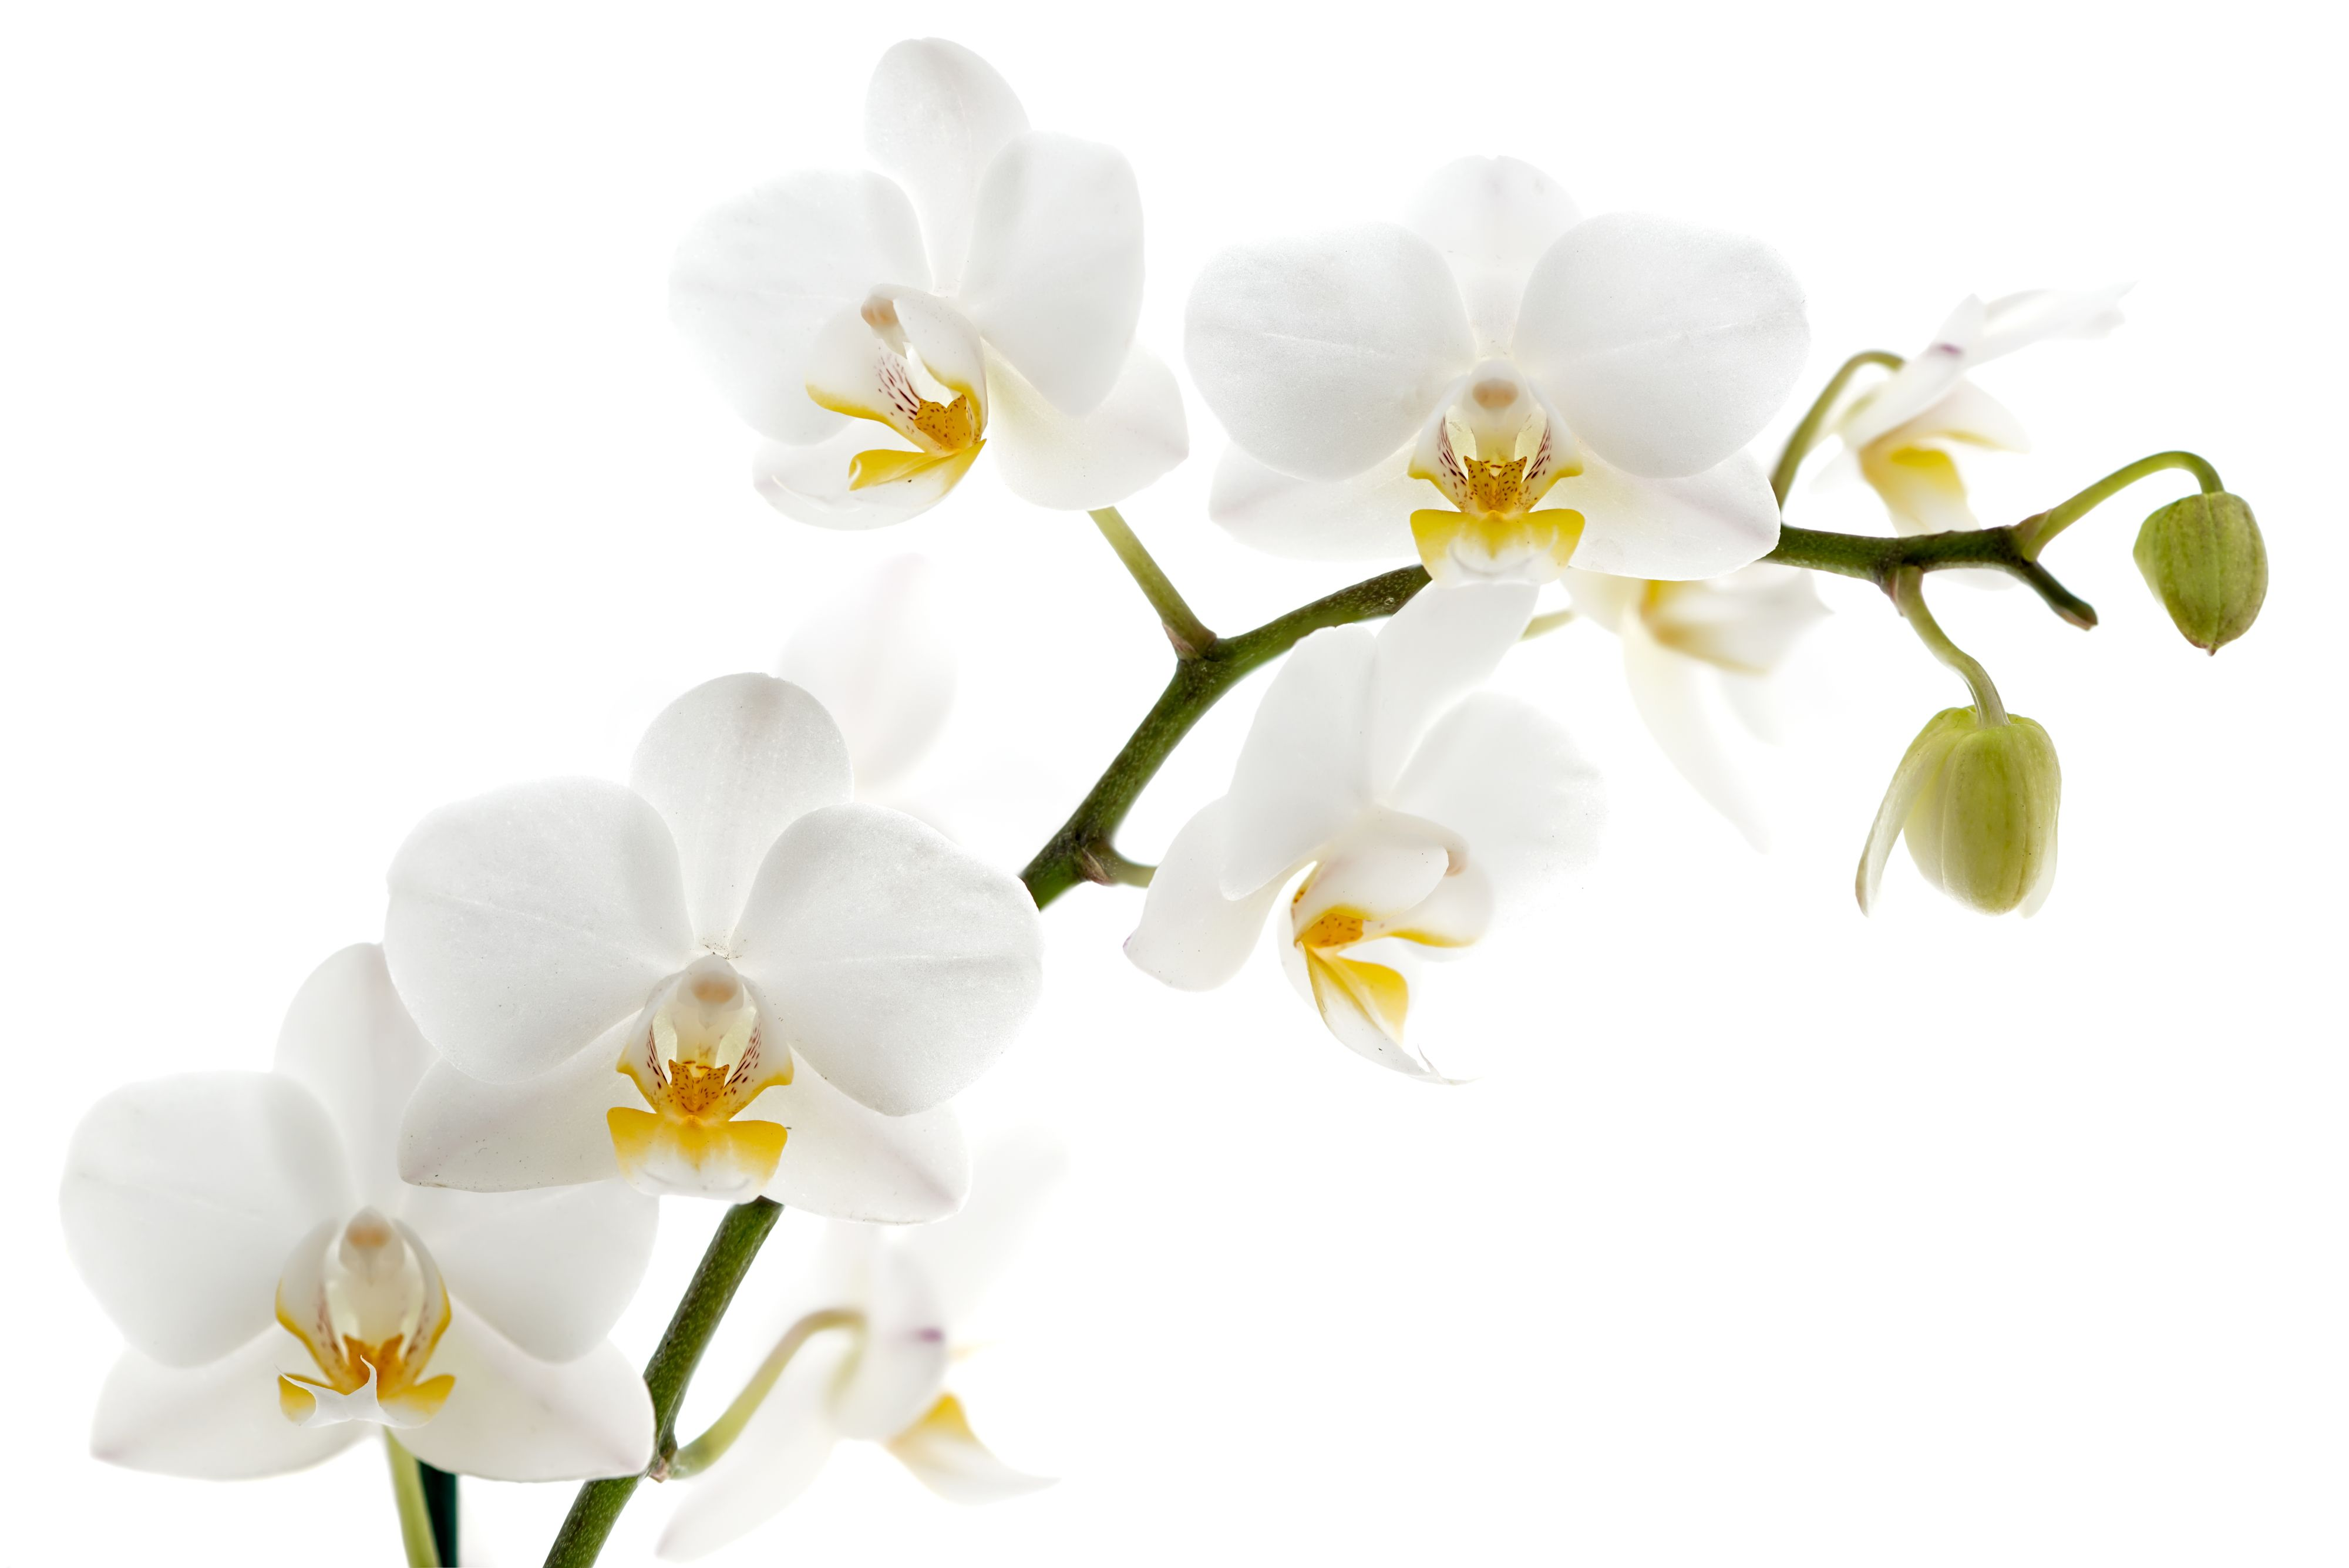 Gaeroladid White Orchid Flower Images Orchids Painting Orchid Flower Flower Images